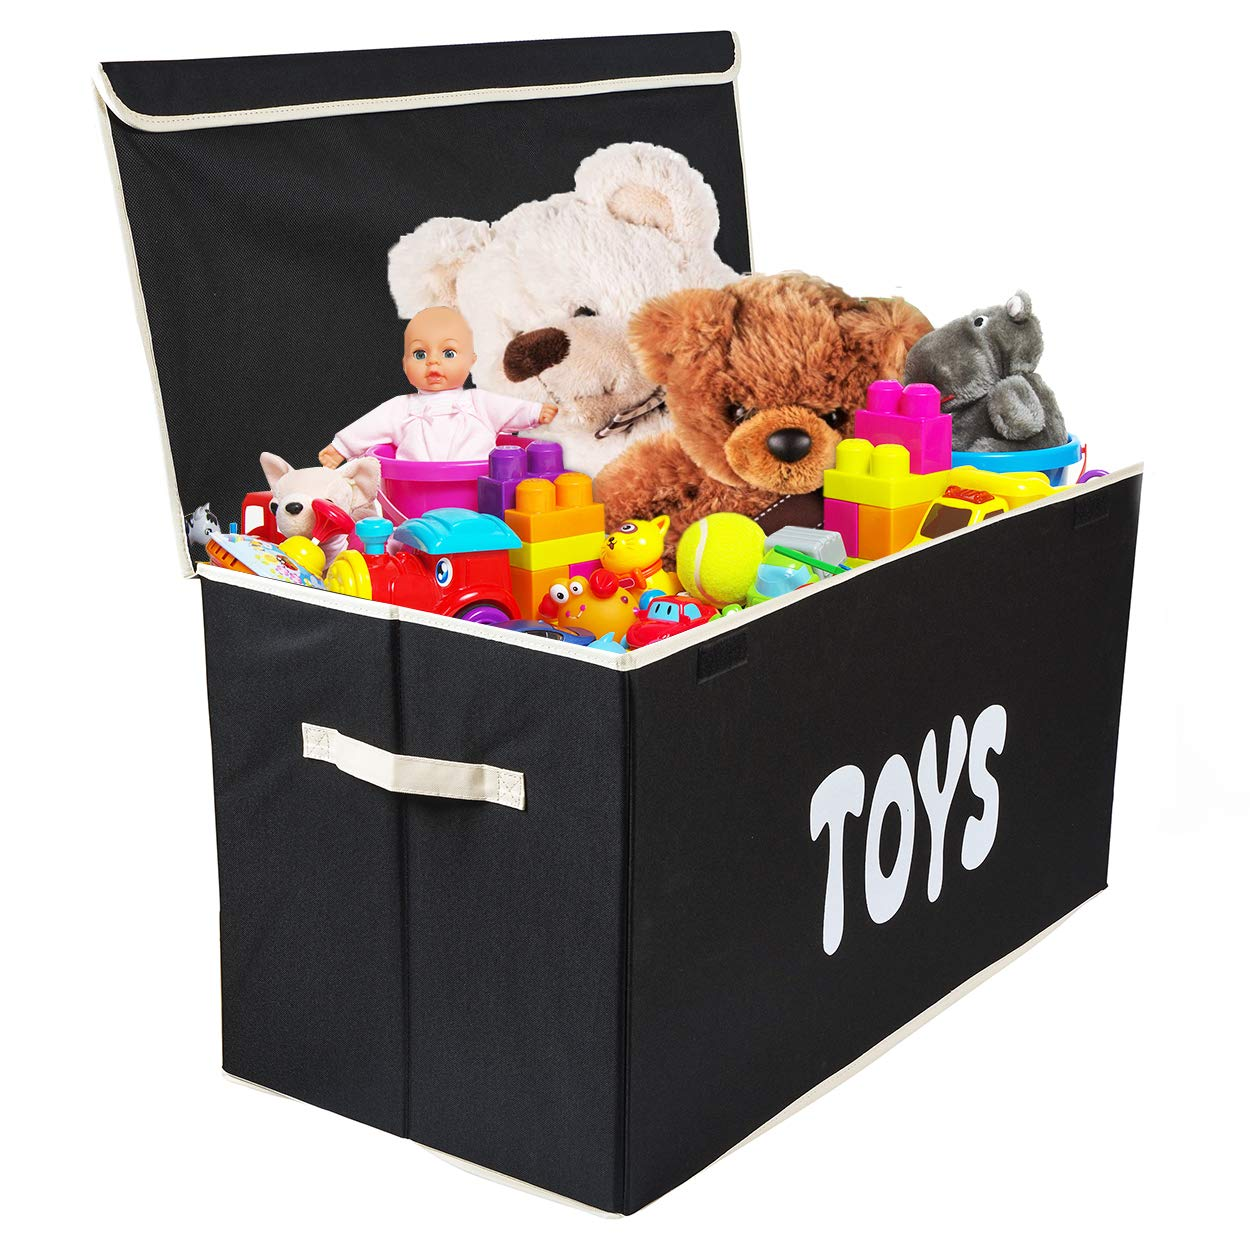 Woffit Toy Storage Organizer Chest for Kids & Living Room, Nursery, Playroom, Closet etc. - Extra Large Collapsible Toys Bin with Flip-top lid for Children & Dog Toys, Great Box for Boys and Girls by Woffit